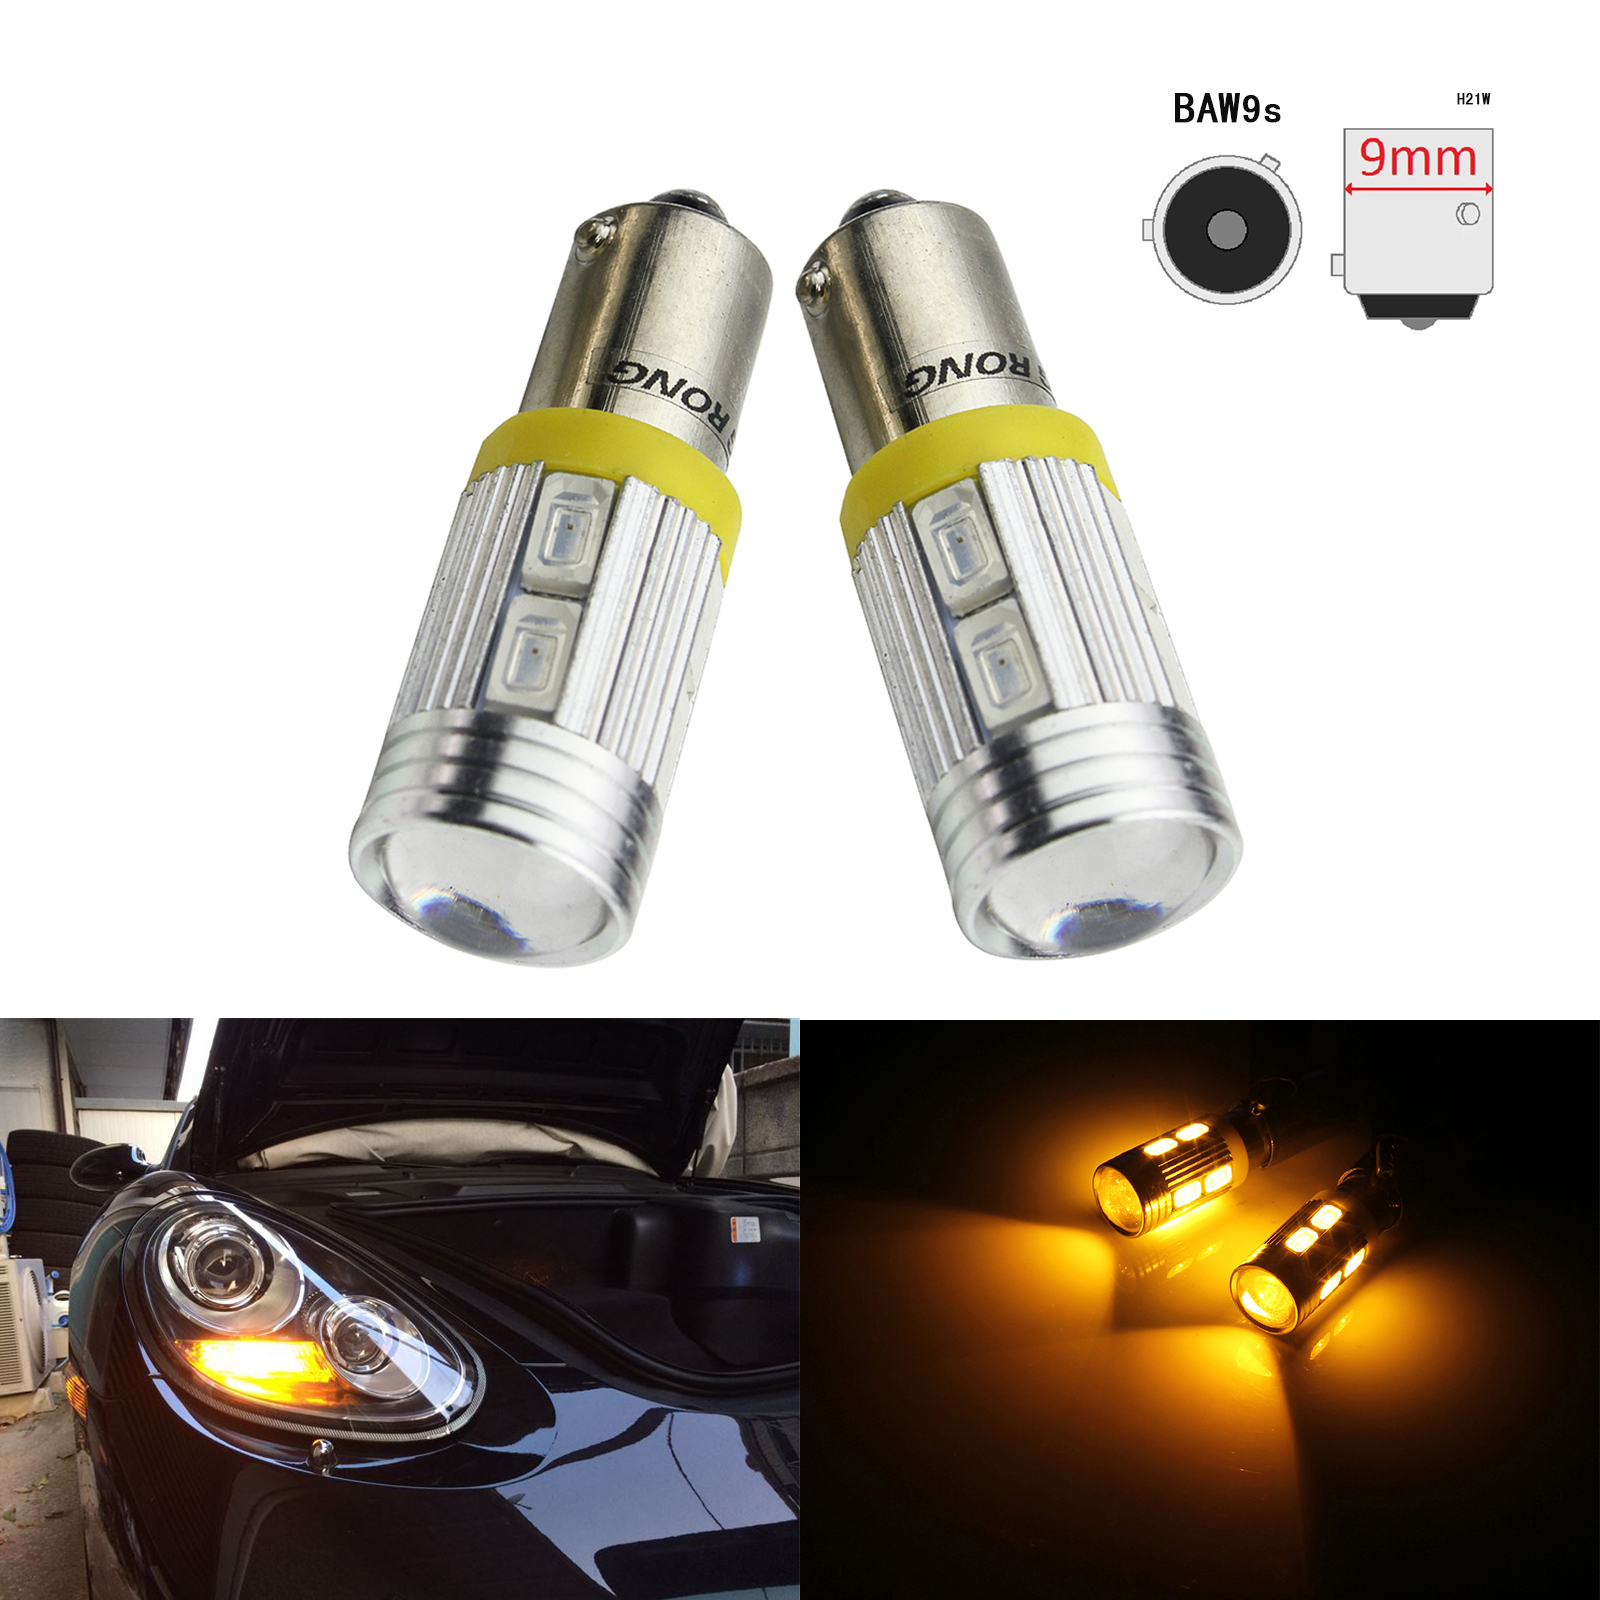 ANGRONG 2x BAW9s HY21W 10 SMD LED Bulbs Front Indicator Reverse Daytime Side Light Amber